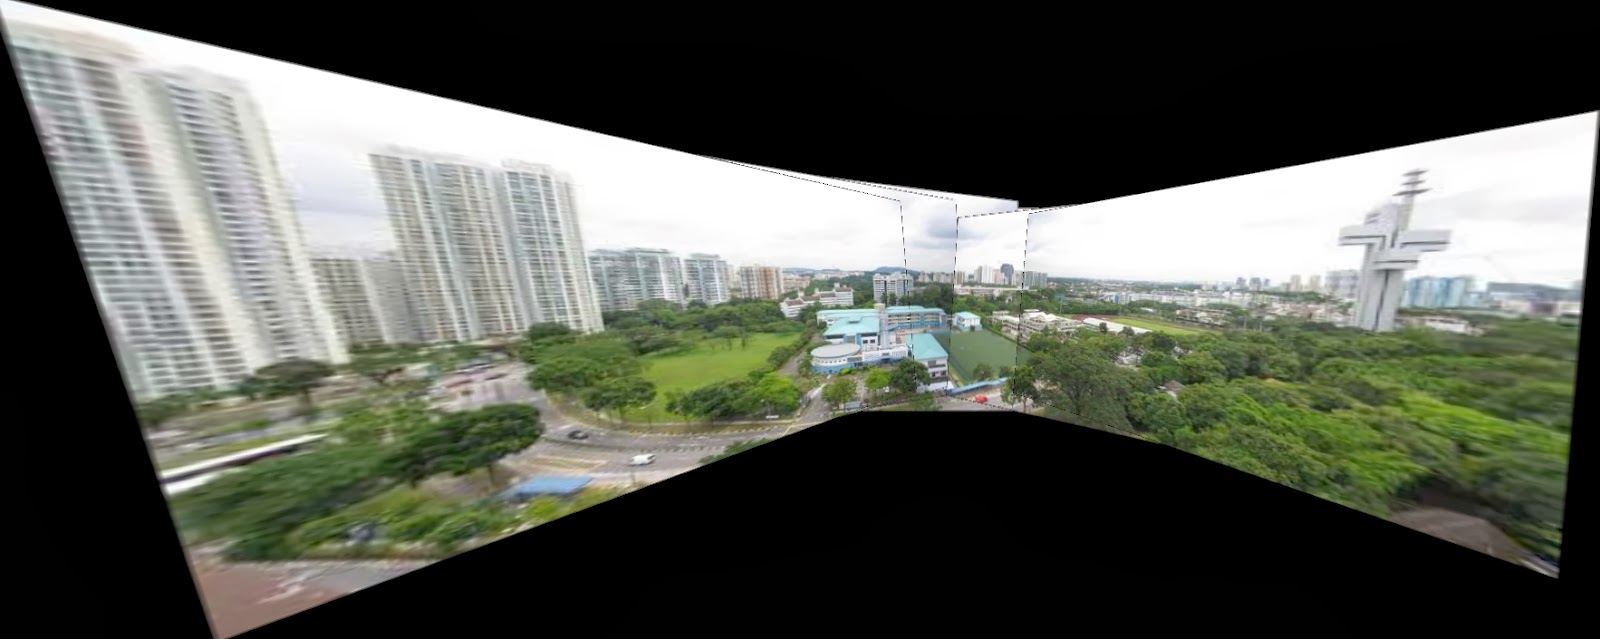 Multiple Images/ Panorama Stitching with Python OpenCV | Dawin's Project